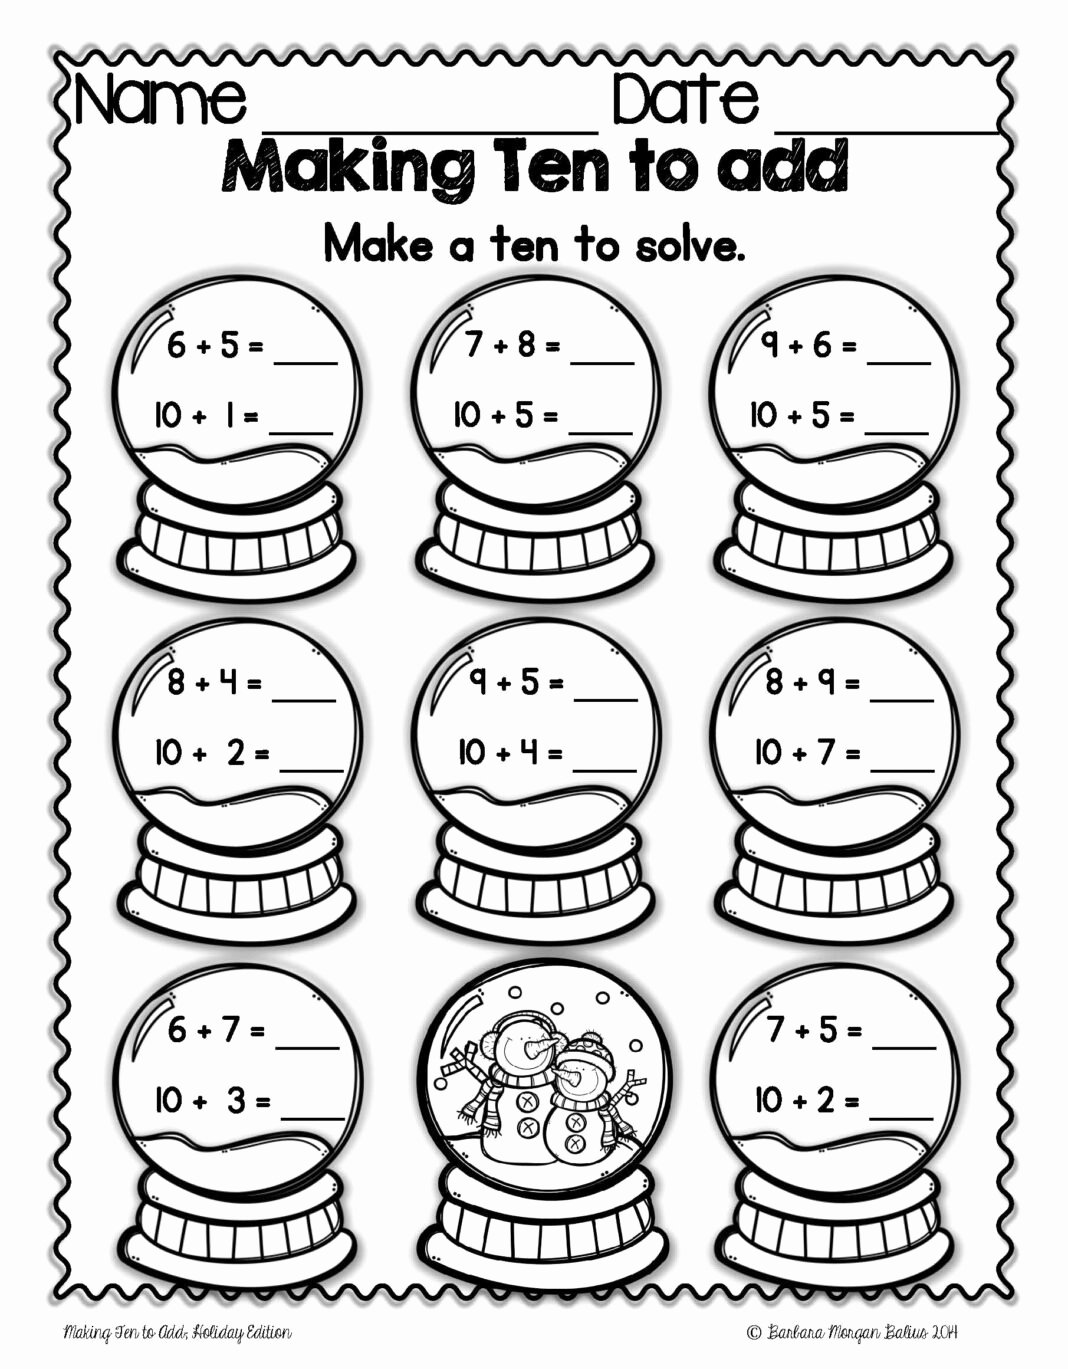 Multiplication Worksheets Christmas Unique Worksheets Christmas Math Making Ten to Mega Holiday